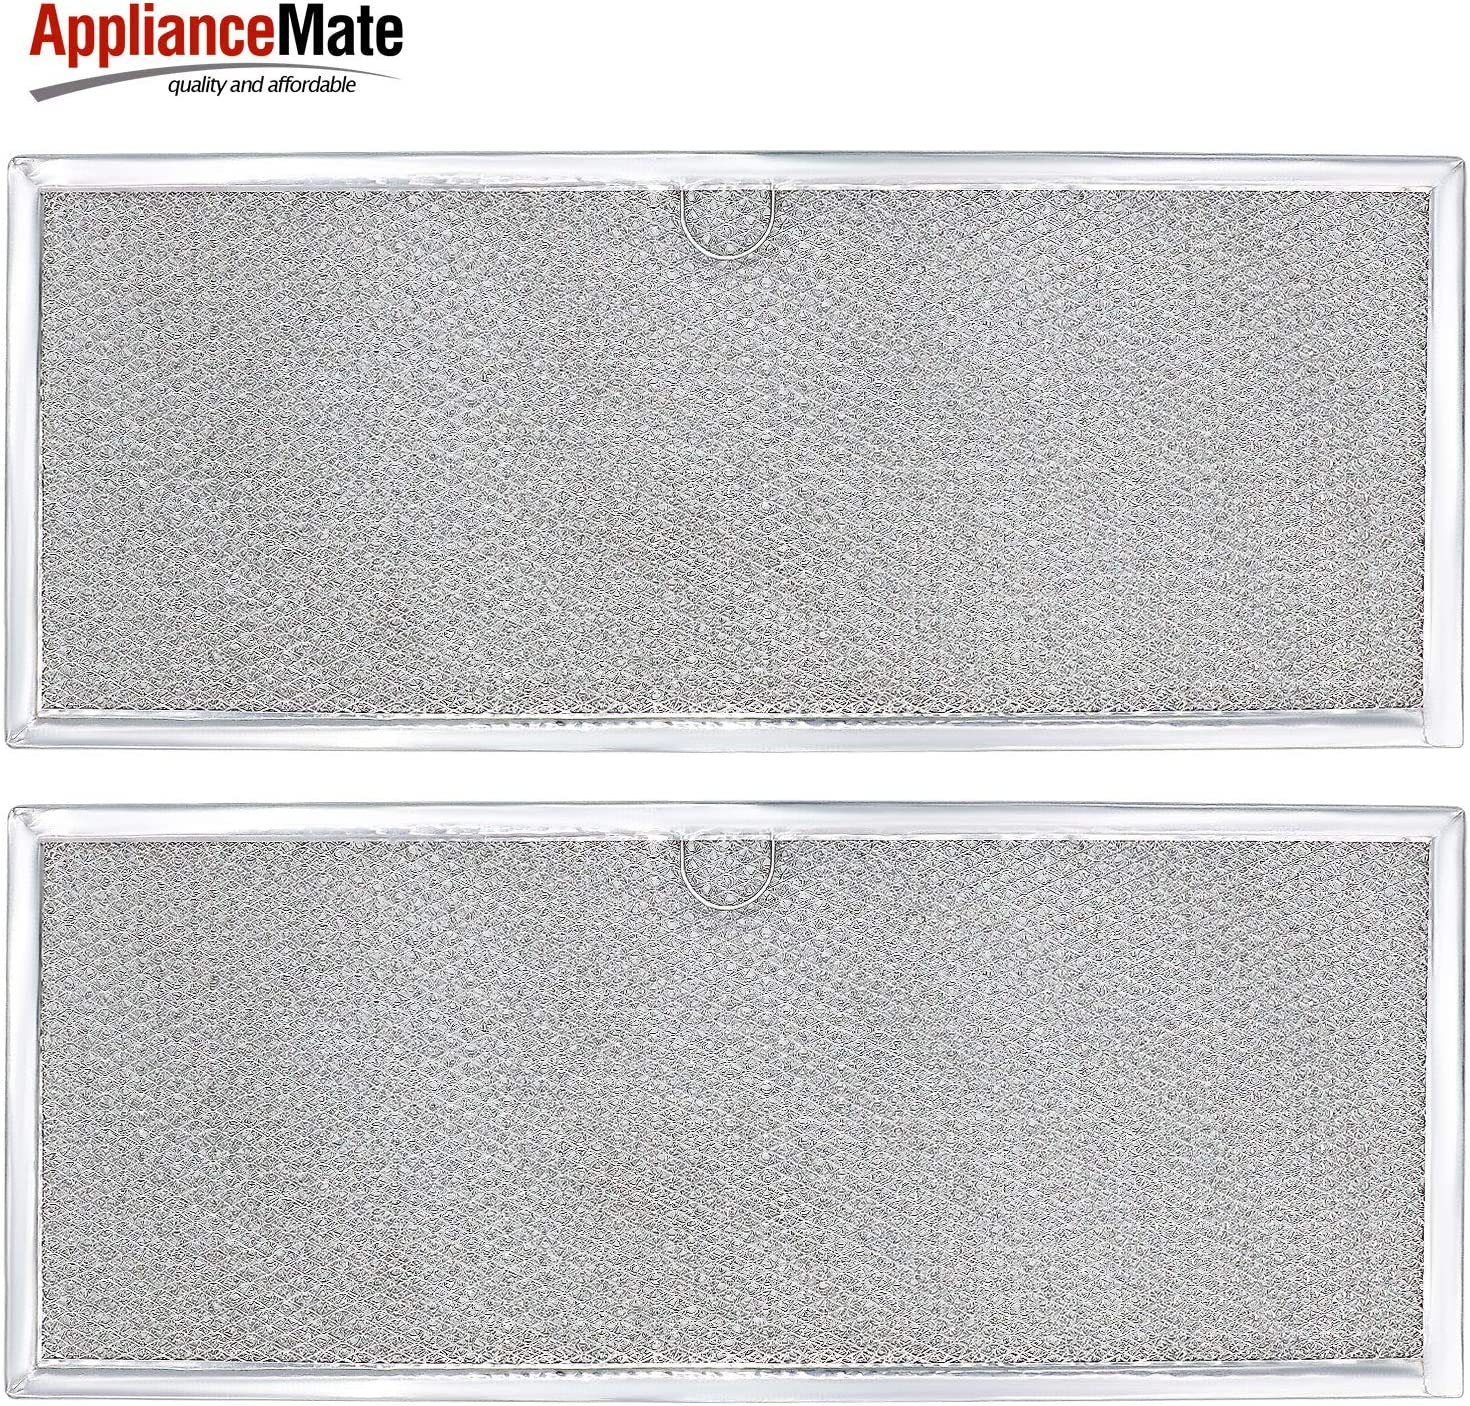 Appliancemate 71002111 Range Hood Grease (2 pcs) Filter for Jenn Air Replacing 5-80029,7-15290,8310P006-60,Y715290